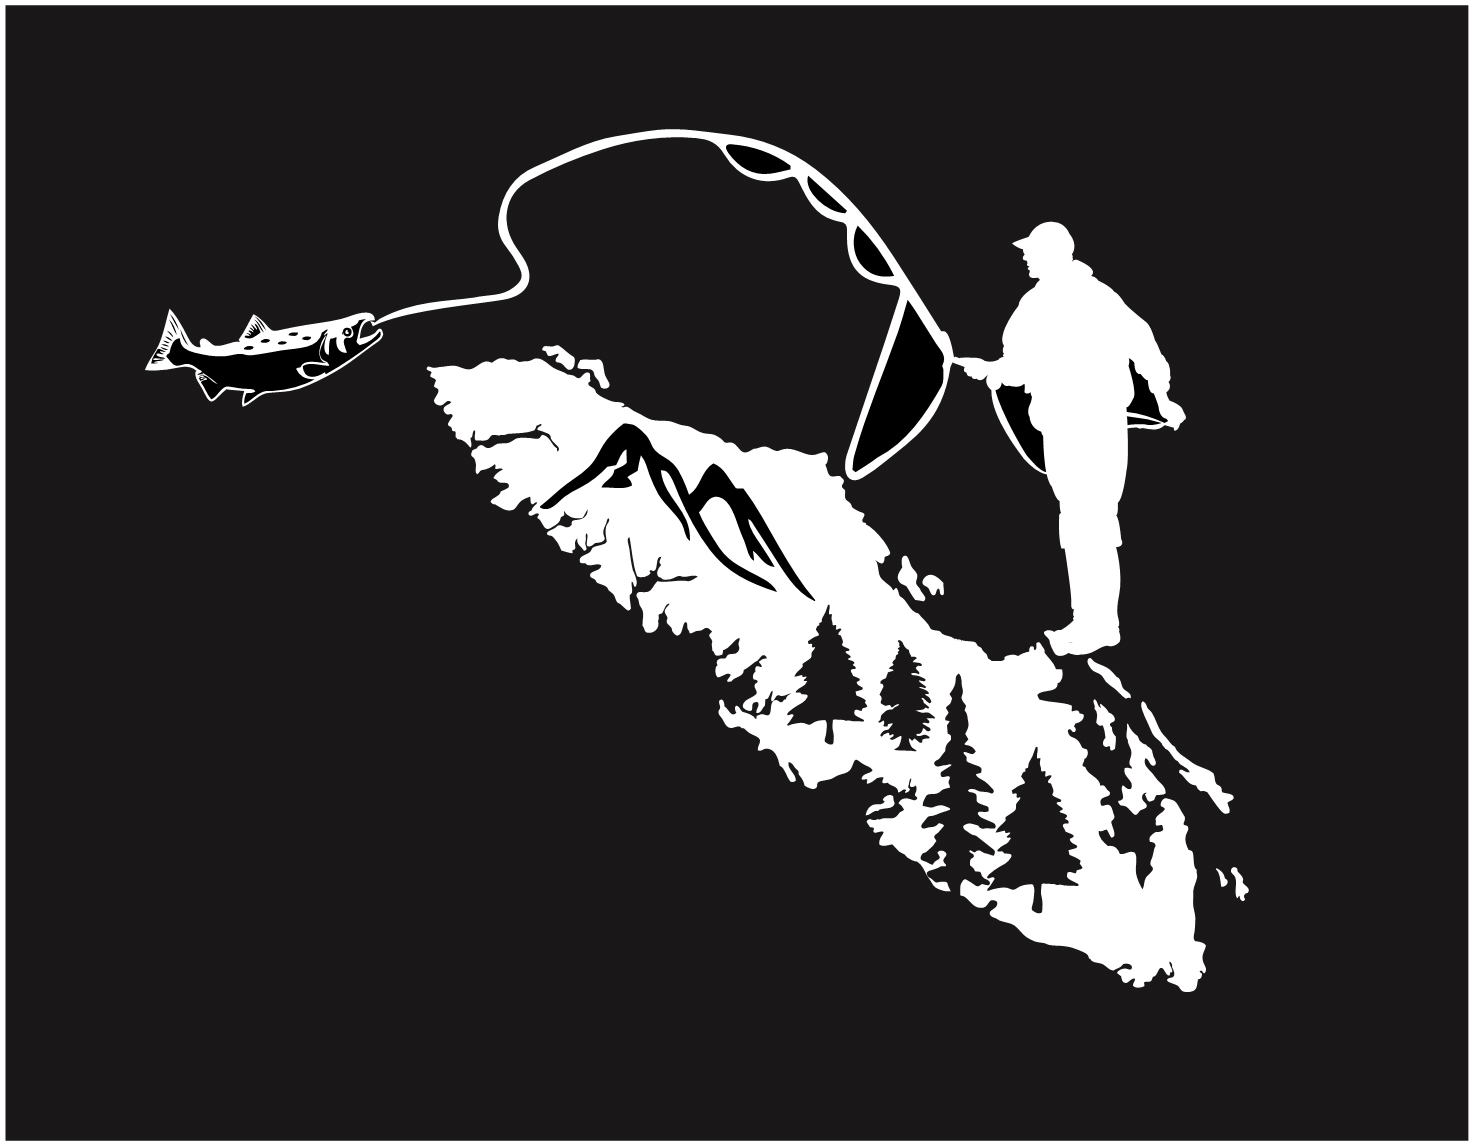 Download Vancouver Island Fly Fishing Decal Free Shipping